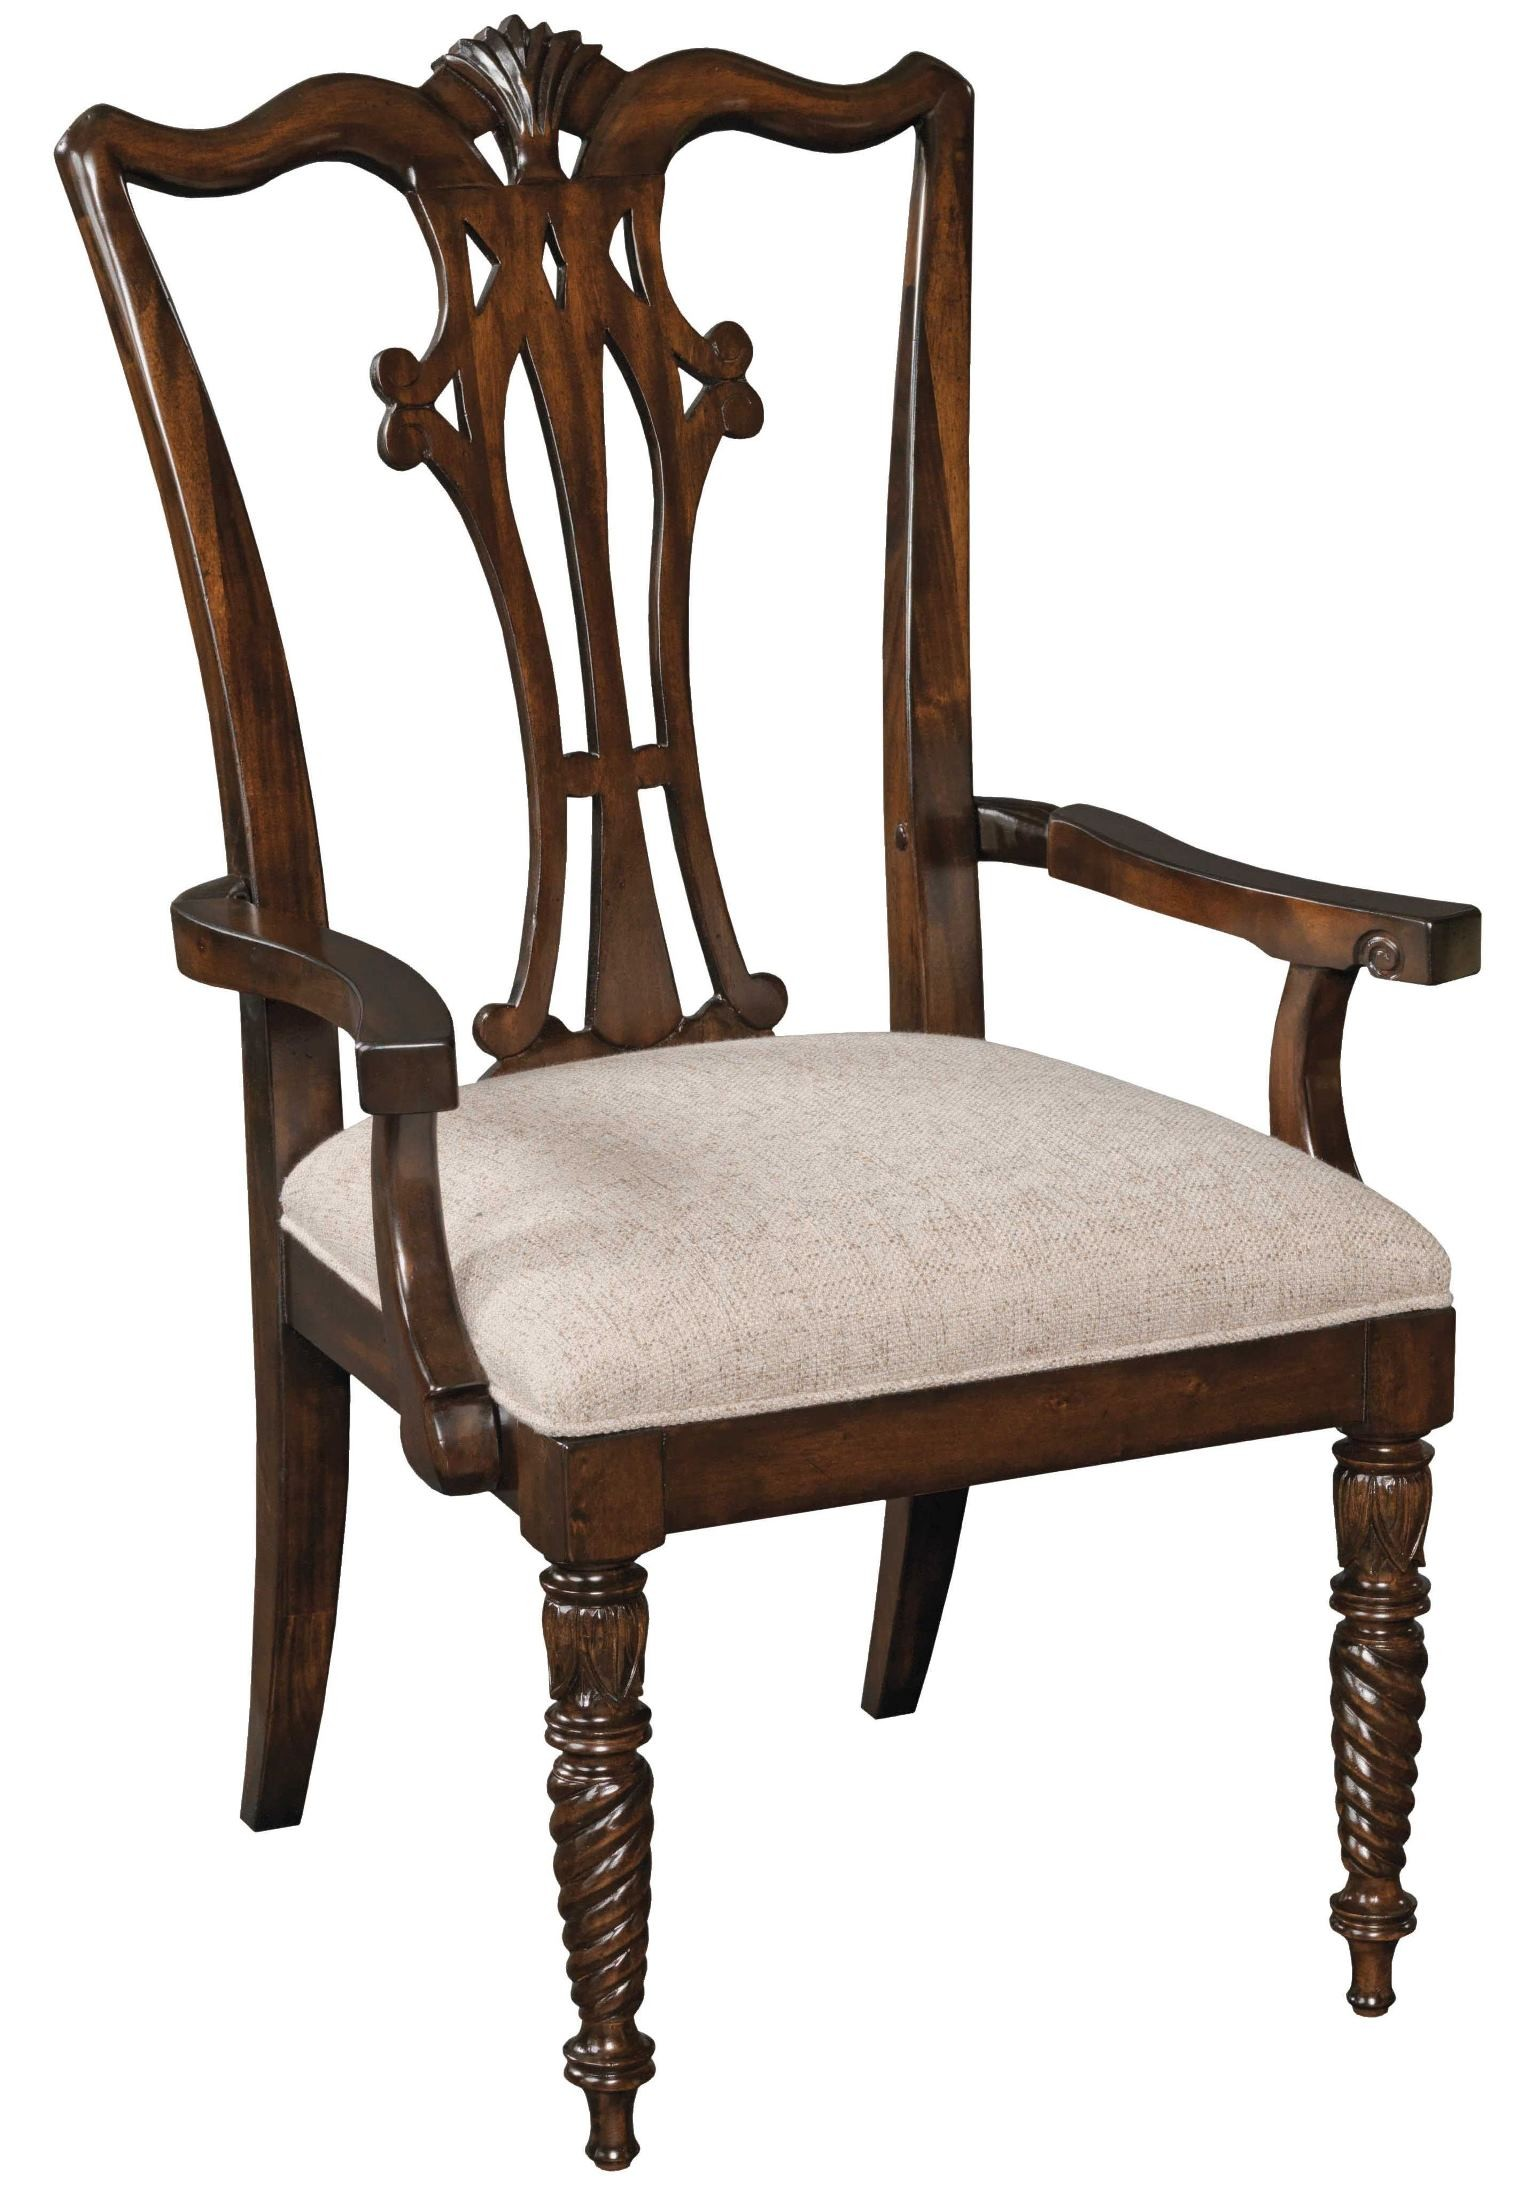 Moonlight Bay Regency Arm Chair From Kincaid 65 062